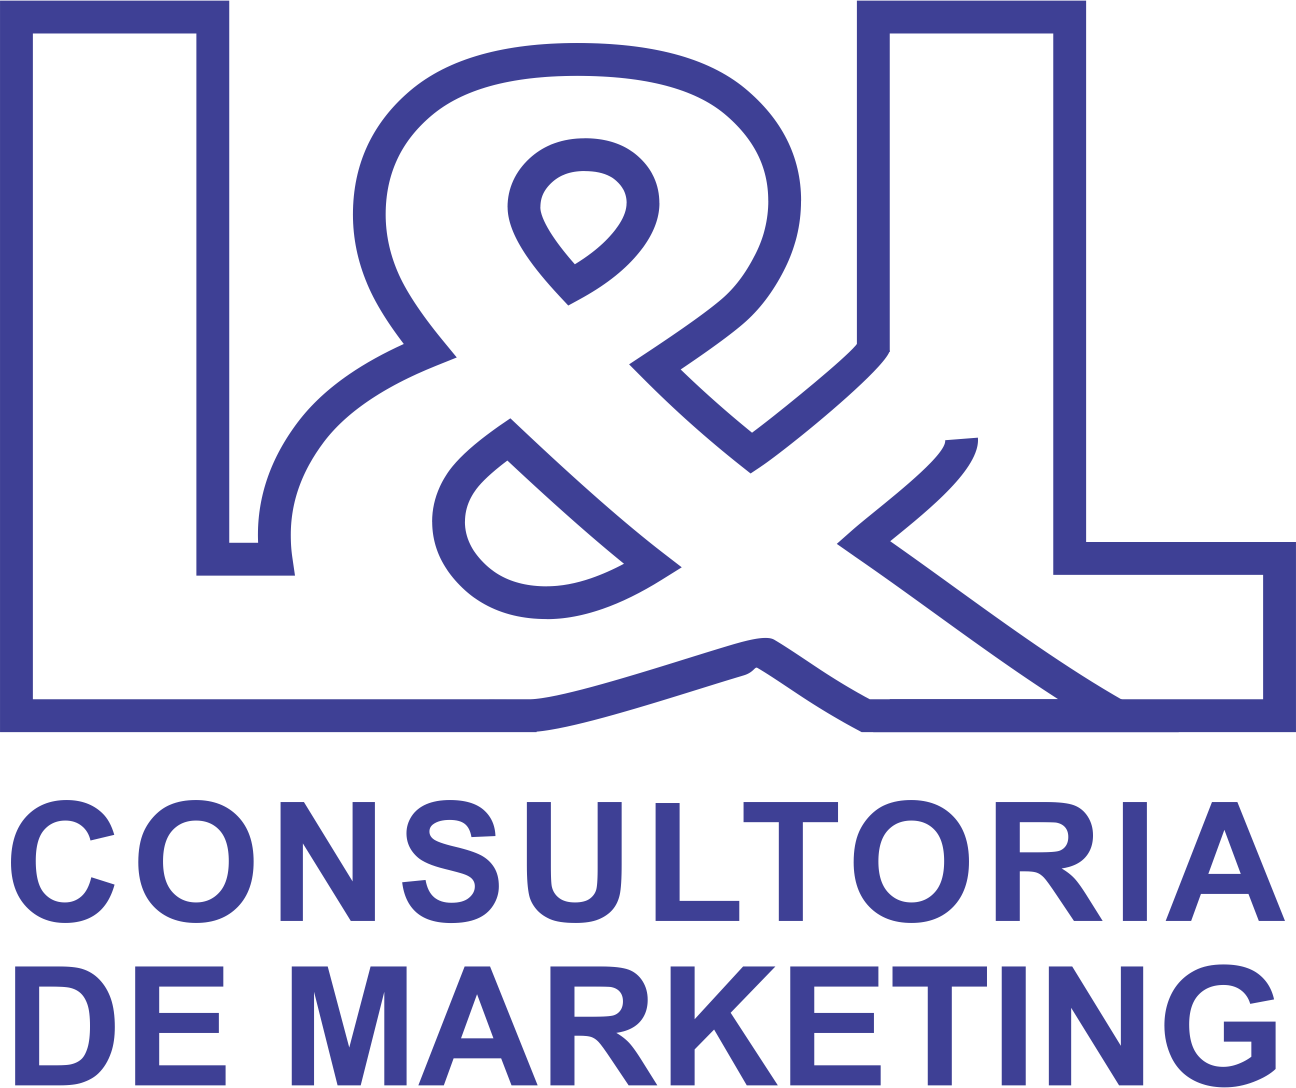 L&L Consultoria de Marketing